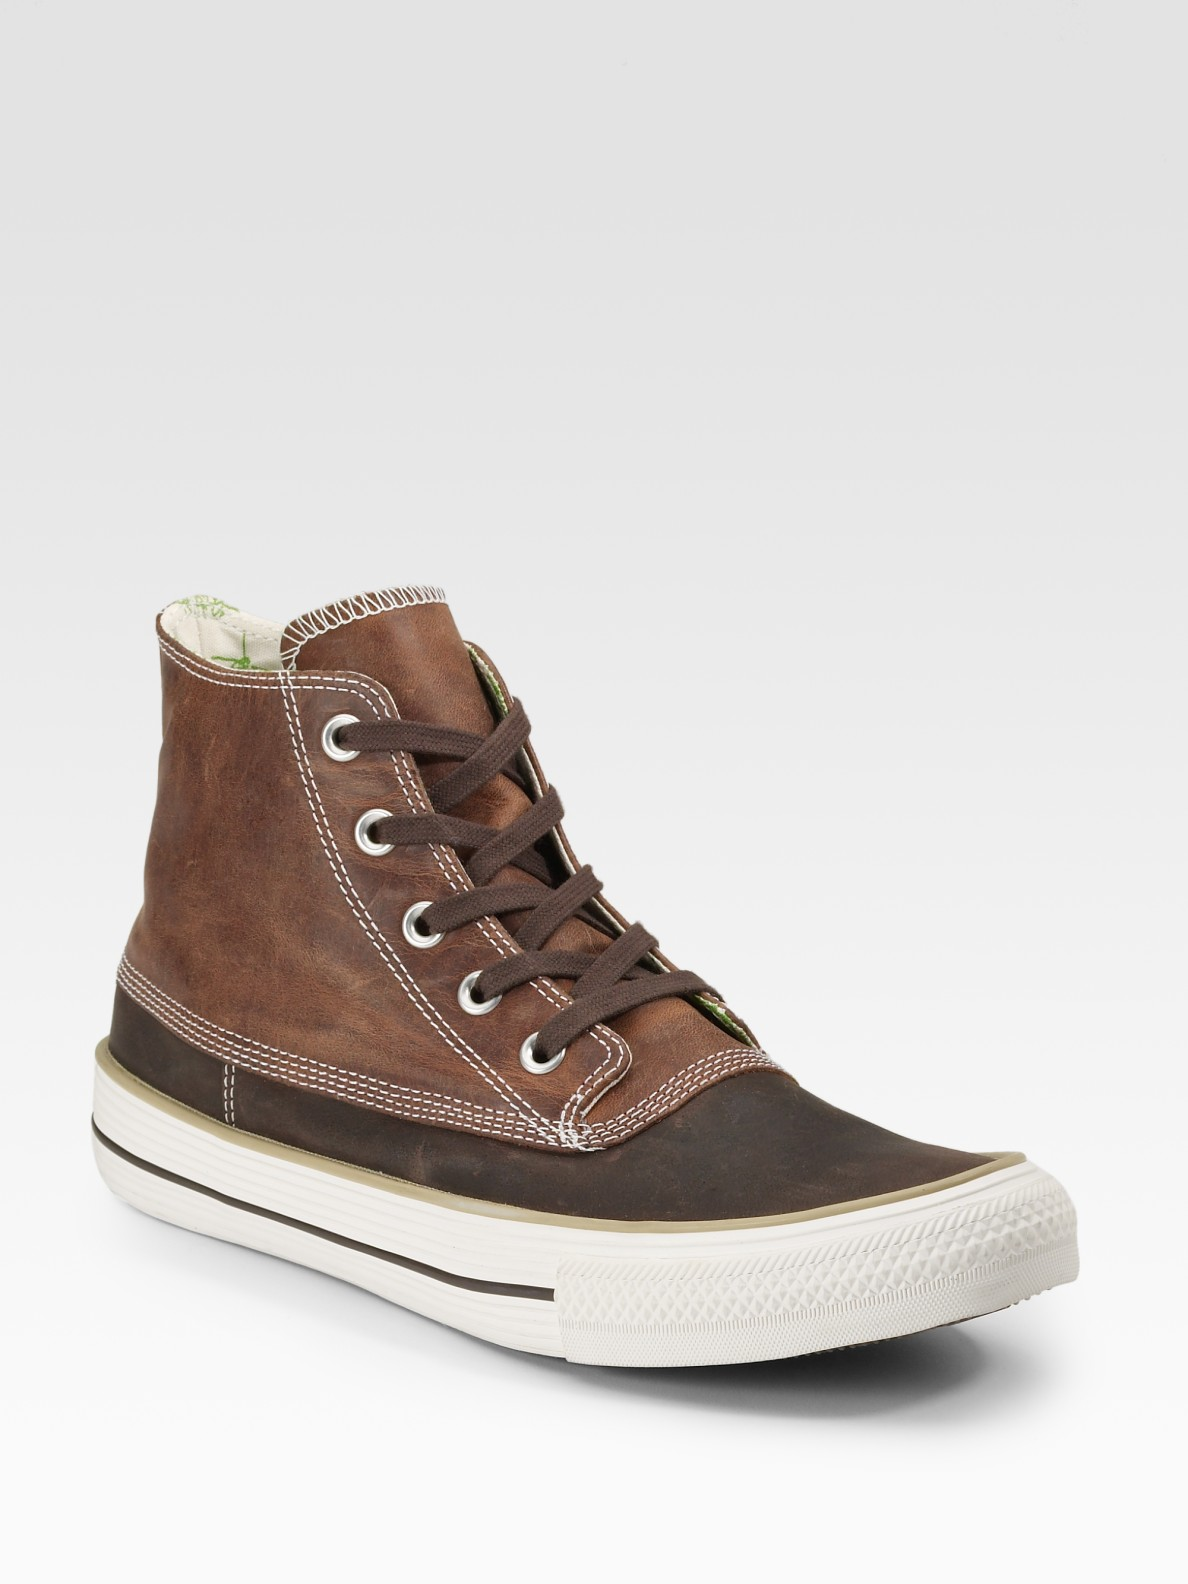 Converse Chuck Taylor Leather Duck Ankle Boots In Brown